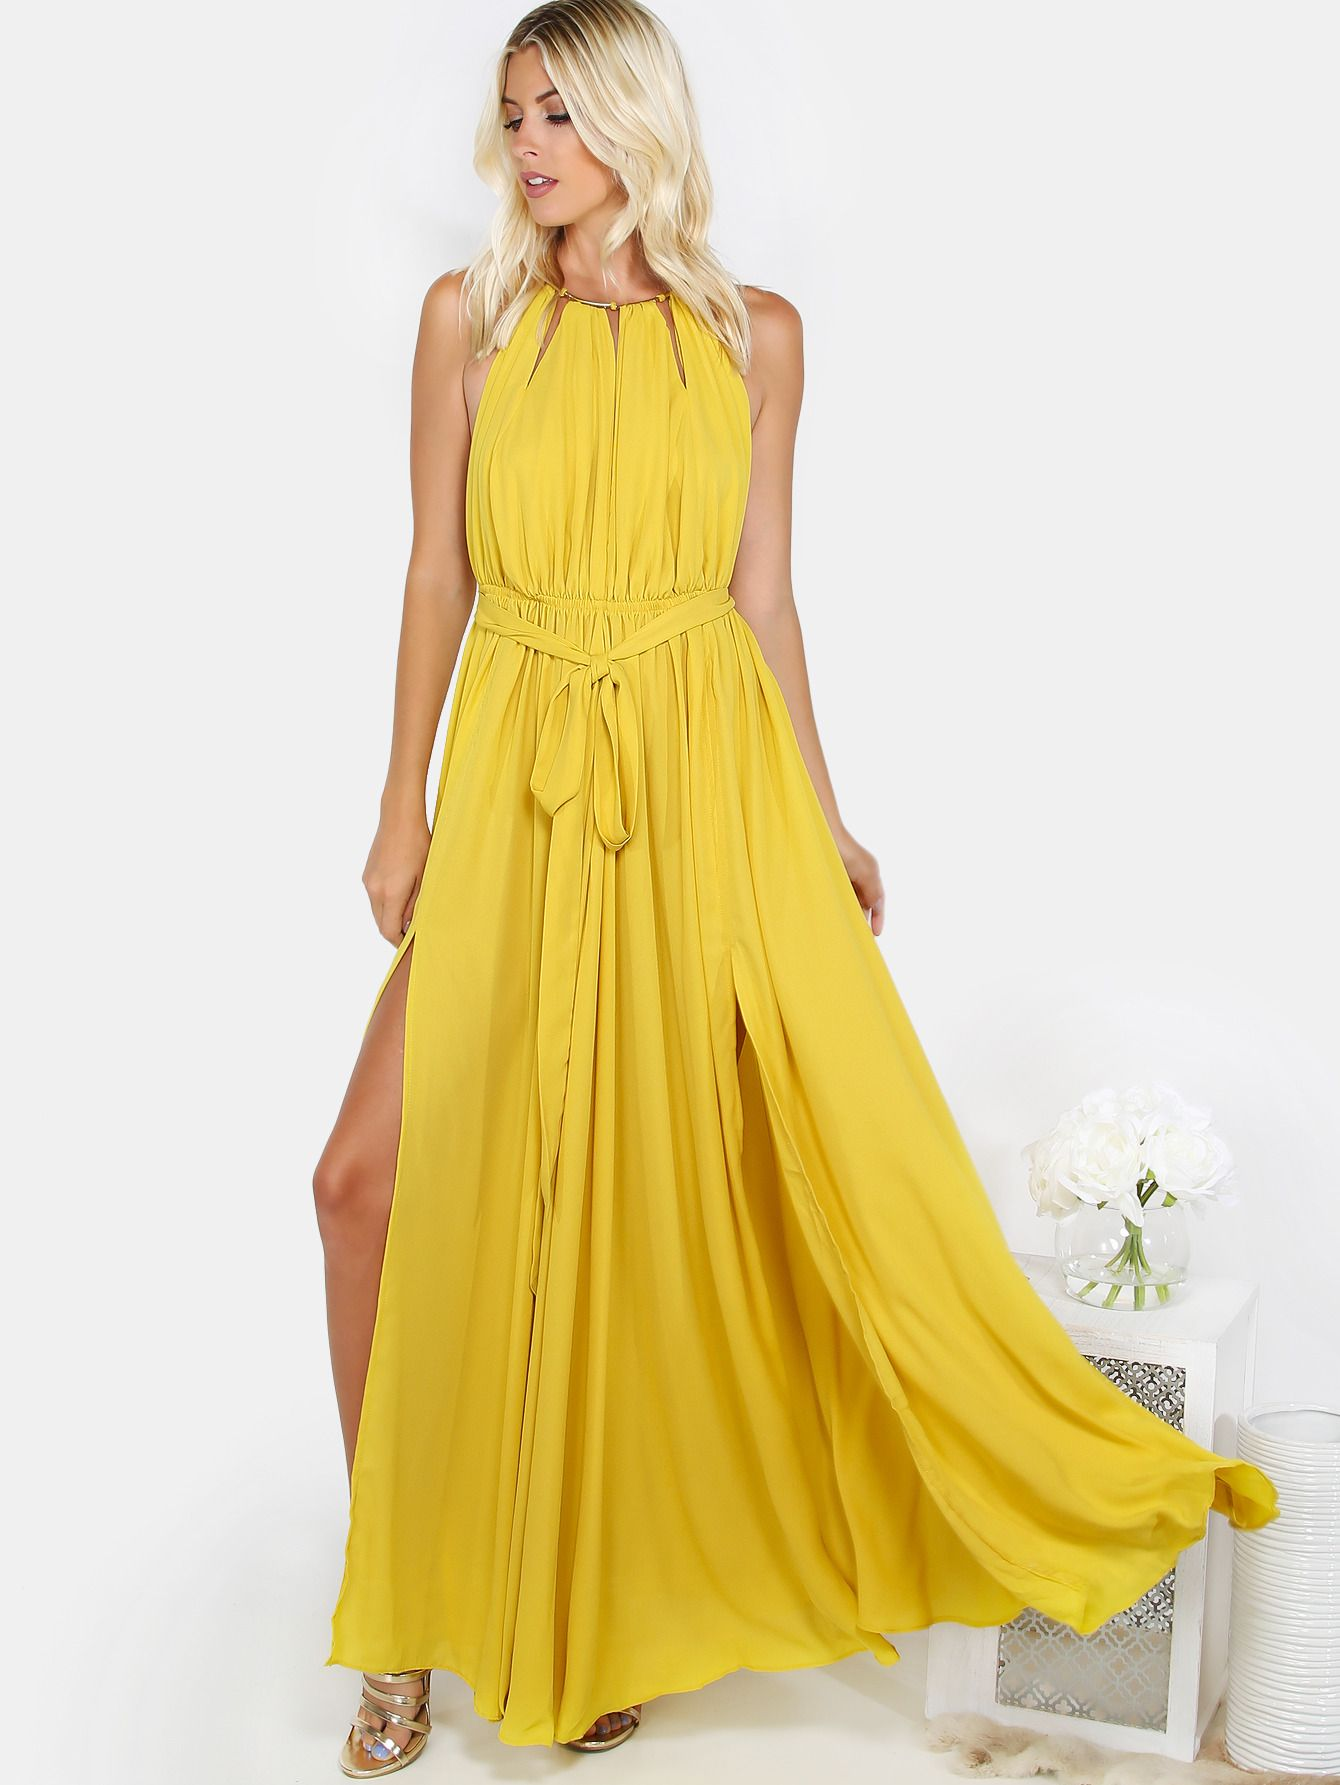 """You'll be a modern princess this summer in the Gathered Slit Maxi Dress! Features gathered elasticized waist with belt tie, cut out slits, gold neckline trim with adjustbable back tie and high skirt slits. Measures 55.1"""" in. from top to bottom hem. Complete your charming look with a messy bun and lace-up sandals! #summer #dresses #maxi #MakeMeChic #MMC #style #fashion #newarrivals #summer16"""